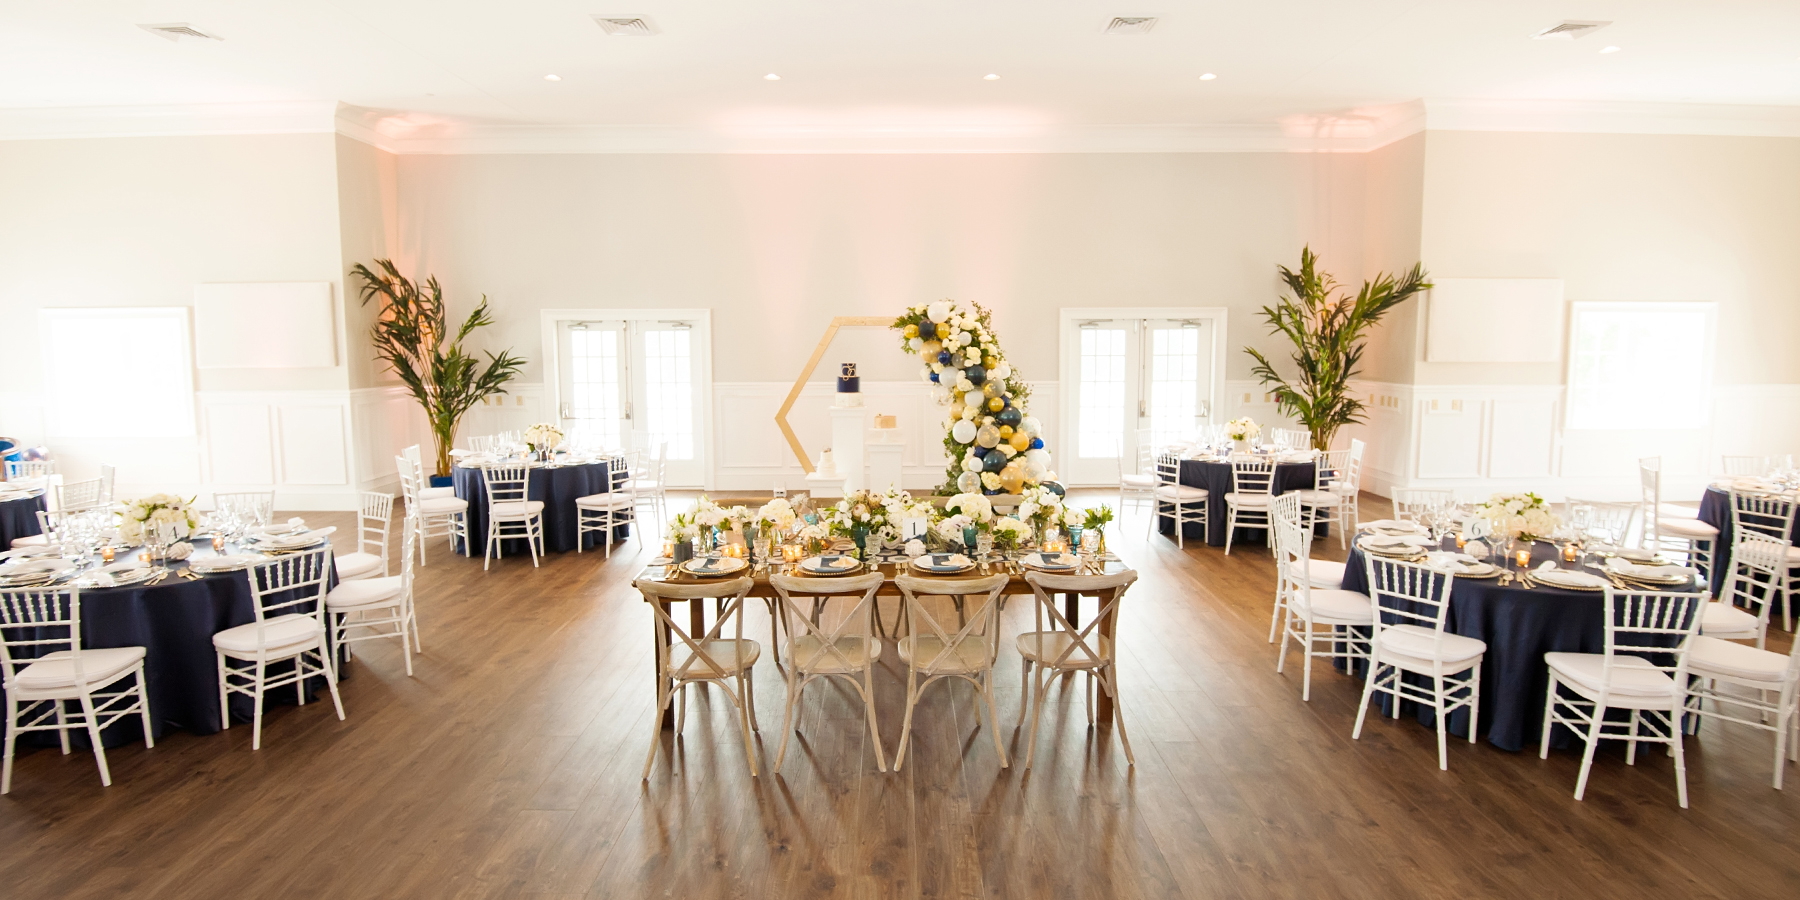 Sugar-vallery-golf-club-wedding-event-hall-rental-dayton-ohio-elite-catering_header.jpg